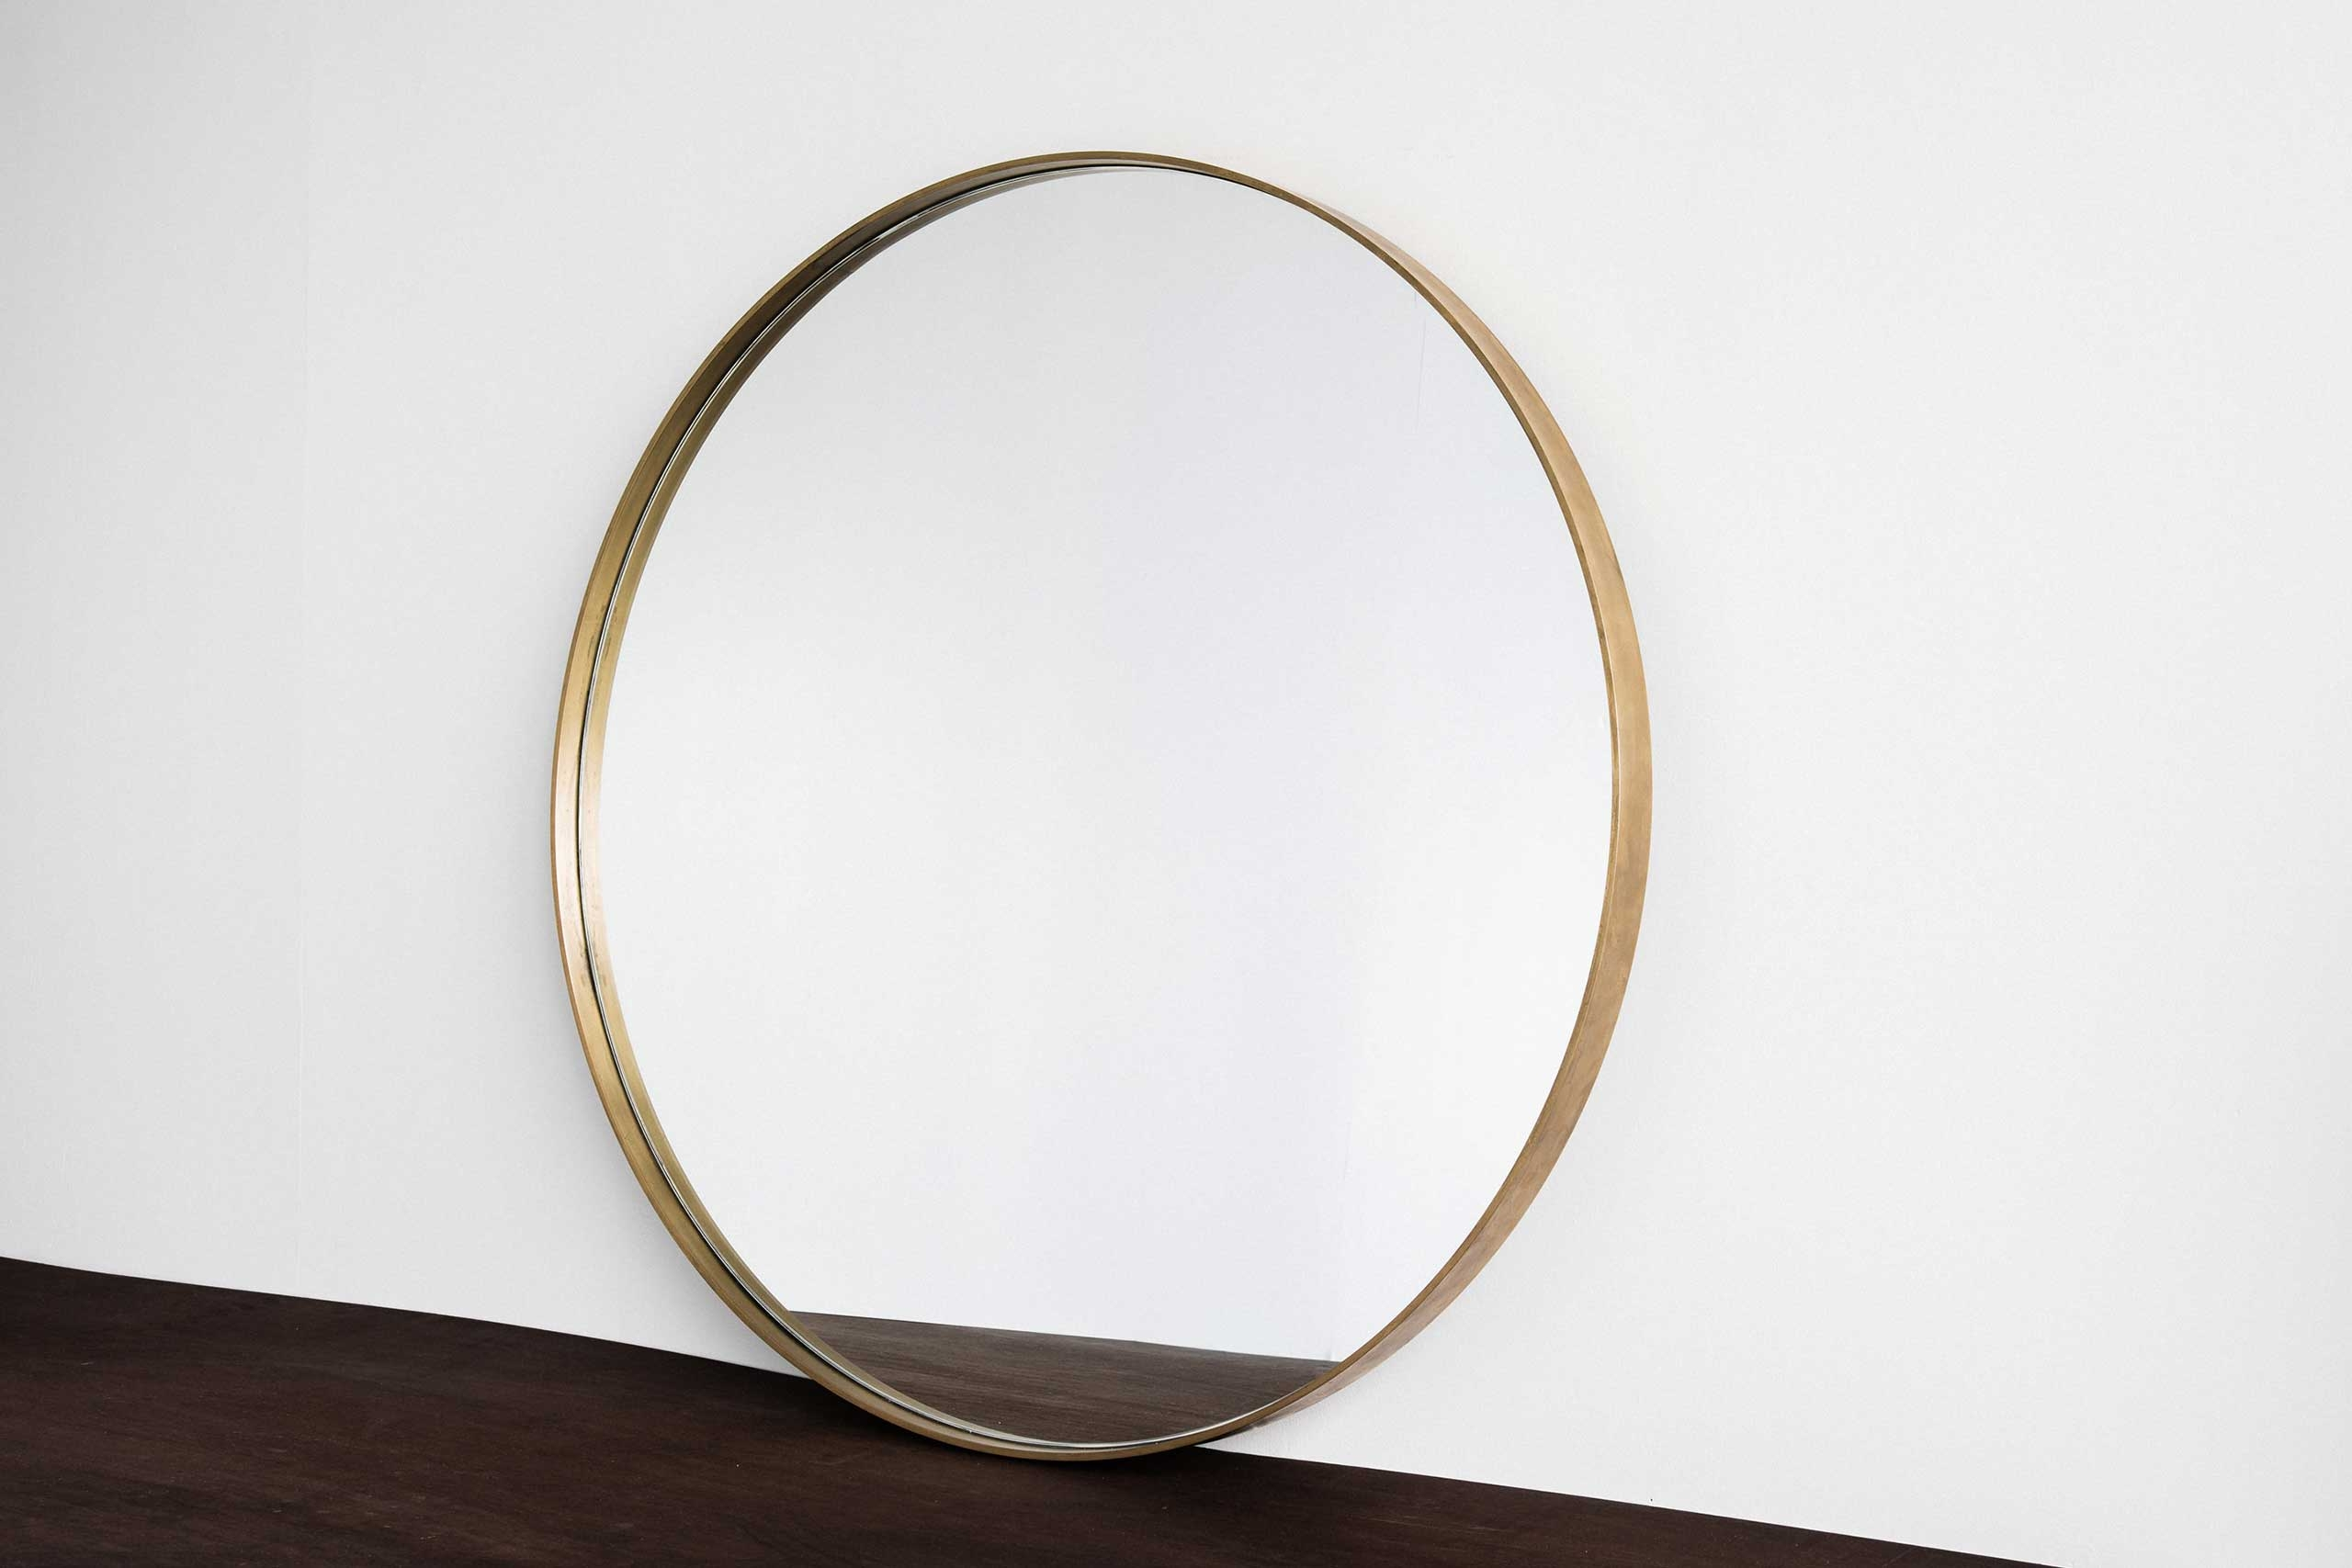 Home Industry Furniture Designed Handcrafted In New Zealand 2016 Pertaining To Round Mirror Large (Image 3 of 15)